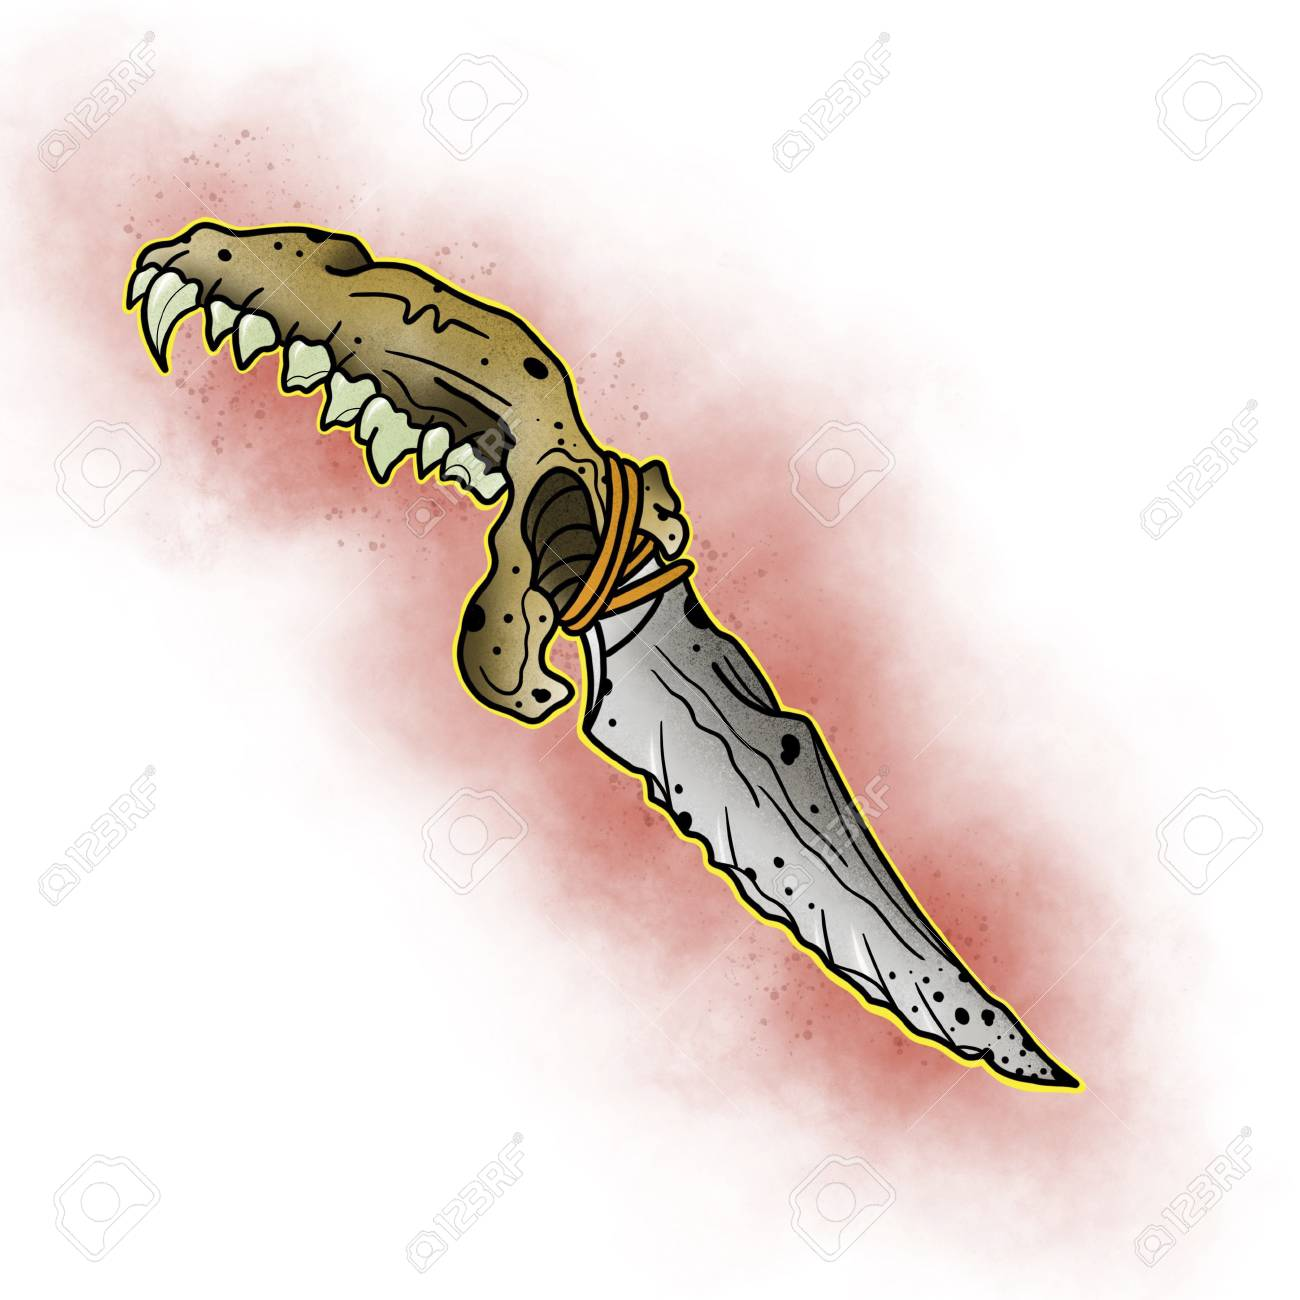 Stylized Knife Tattoo Design Cartoon Illustration Hand Drawn Stock Photo Picture And Royalty Free Image Image 84155749